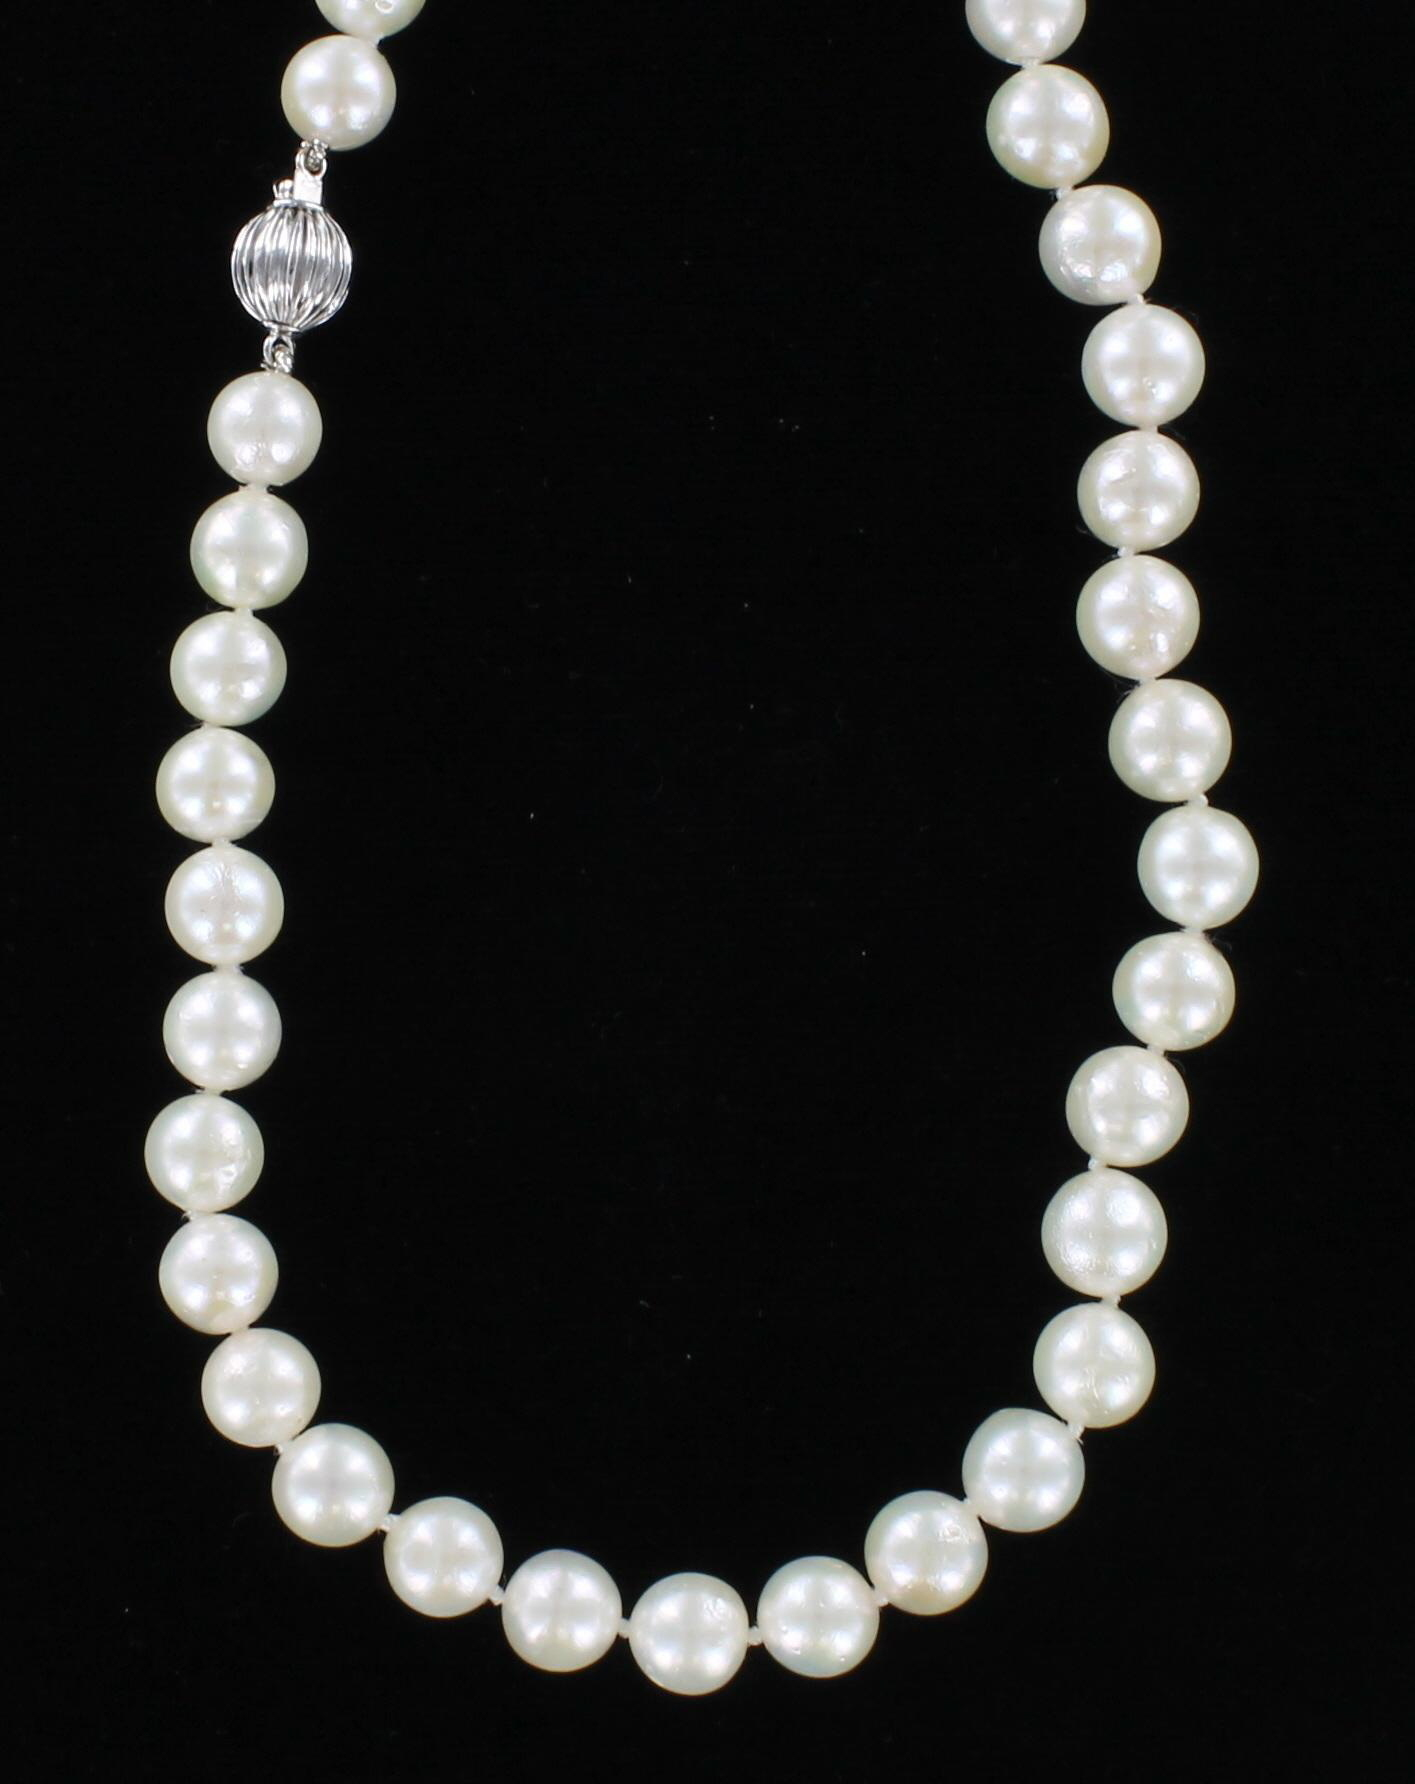 14KT PEARL NECKLACE 101-2615